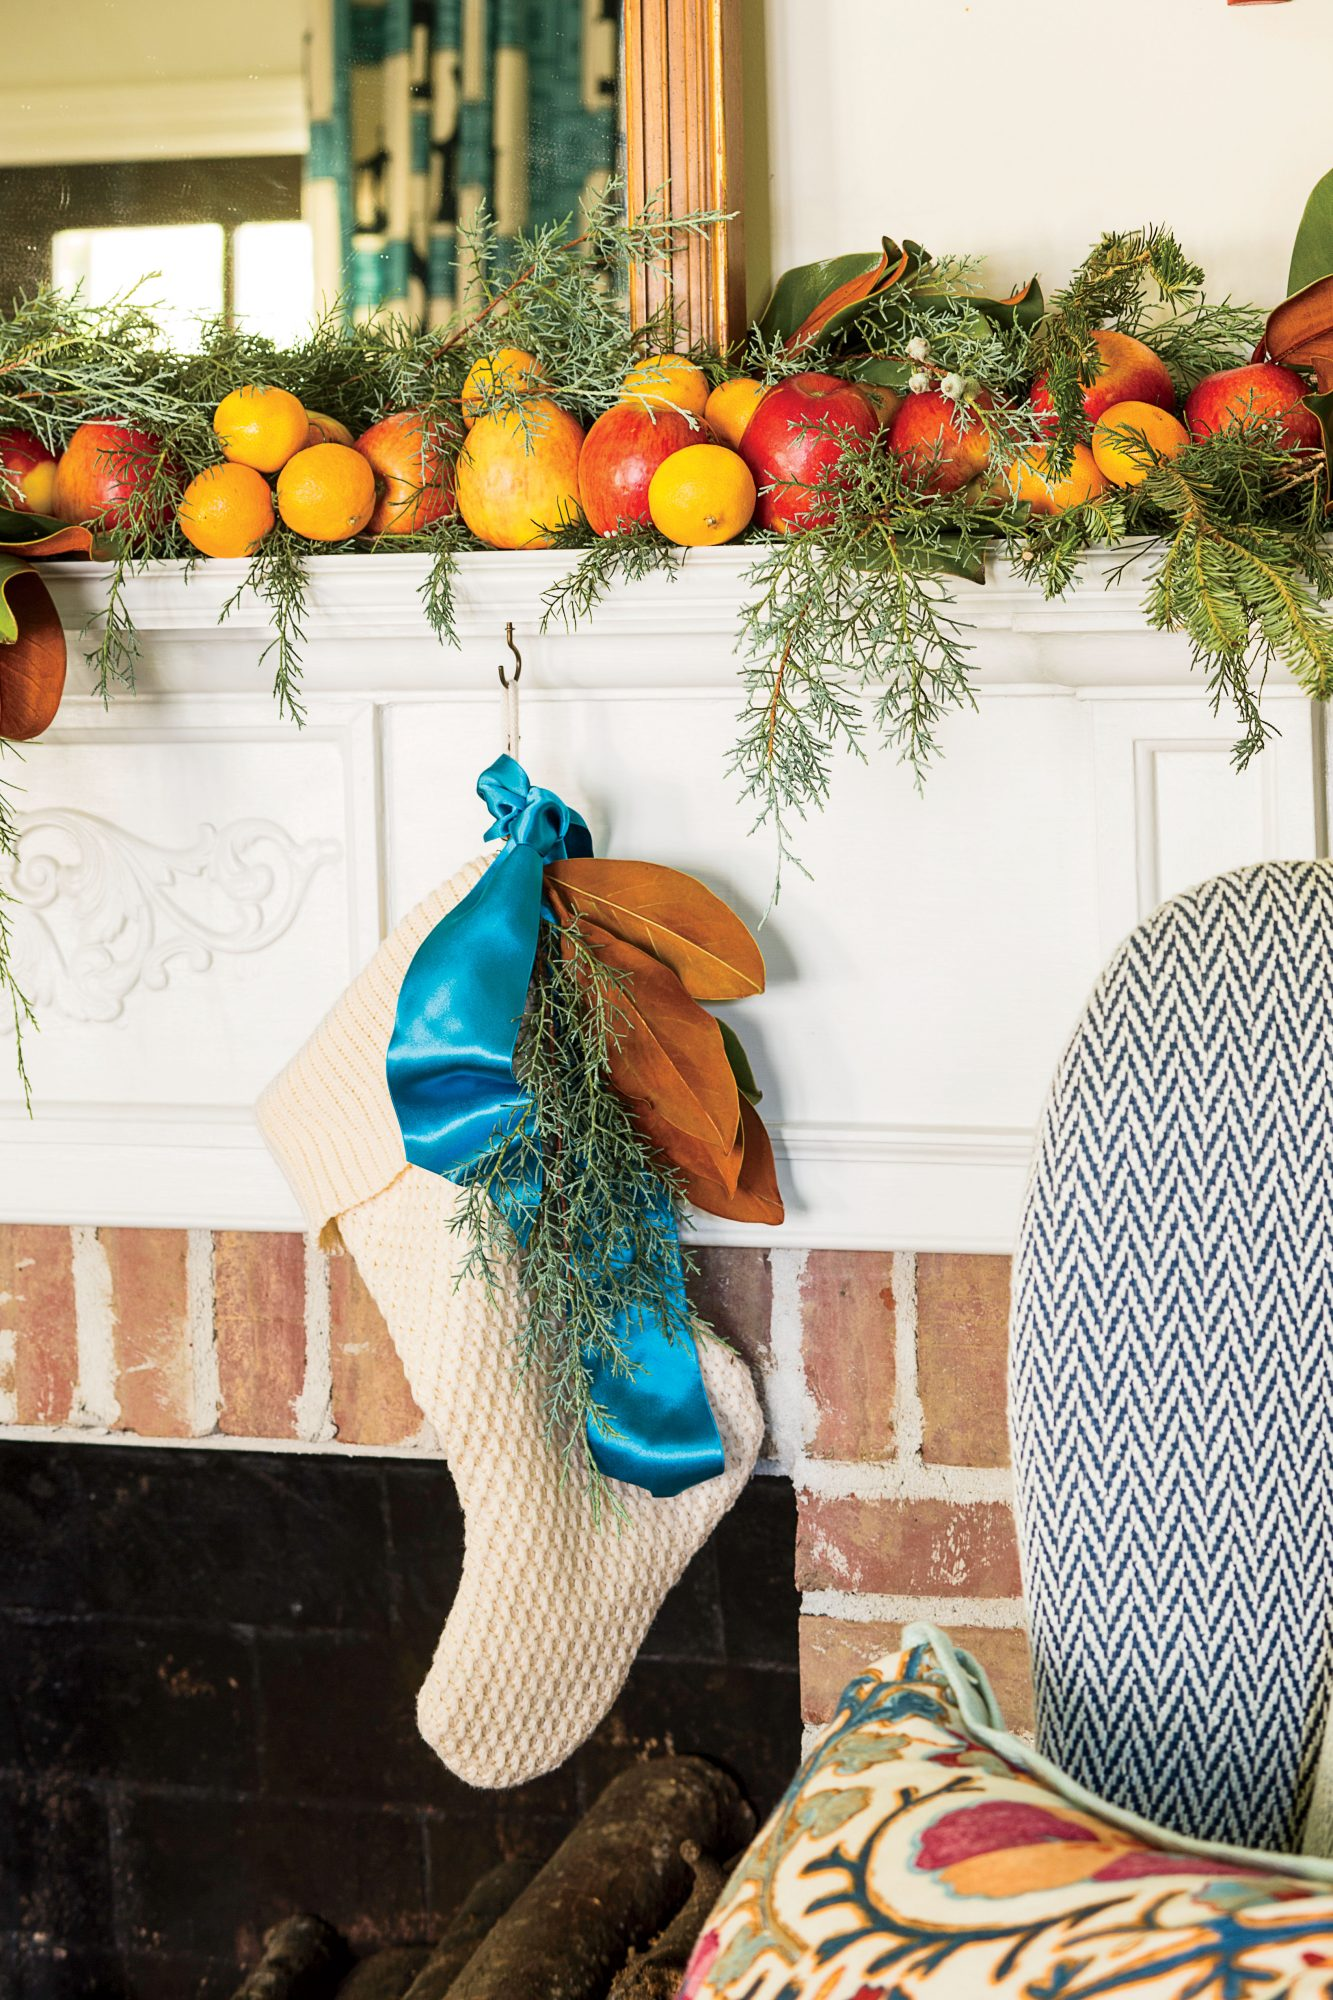 Christmas Stocking with Magnolia Leaves